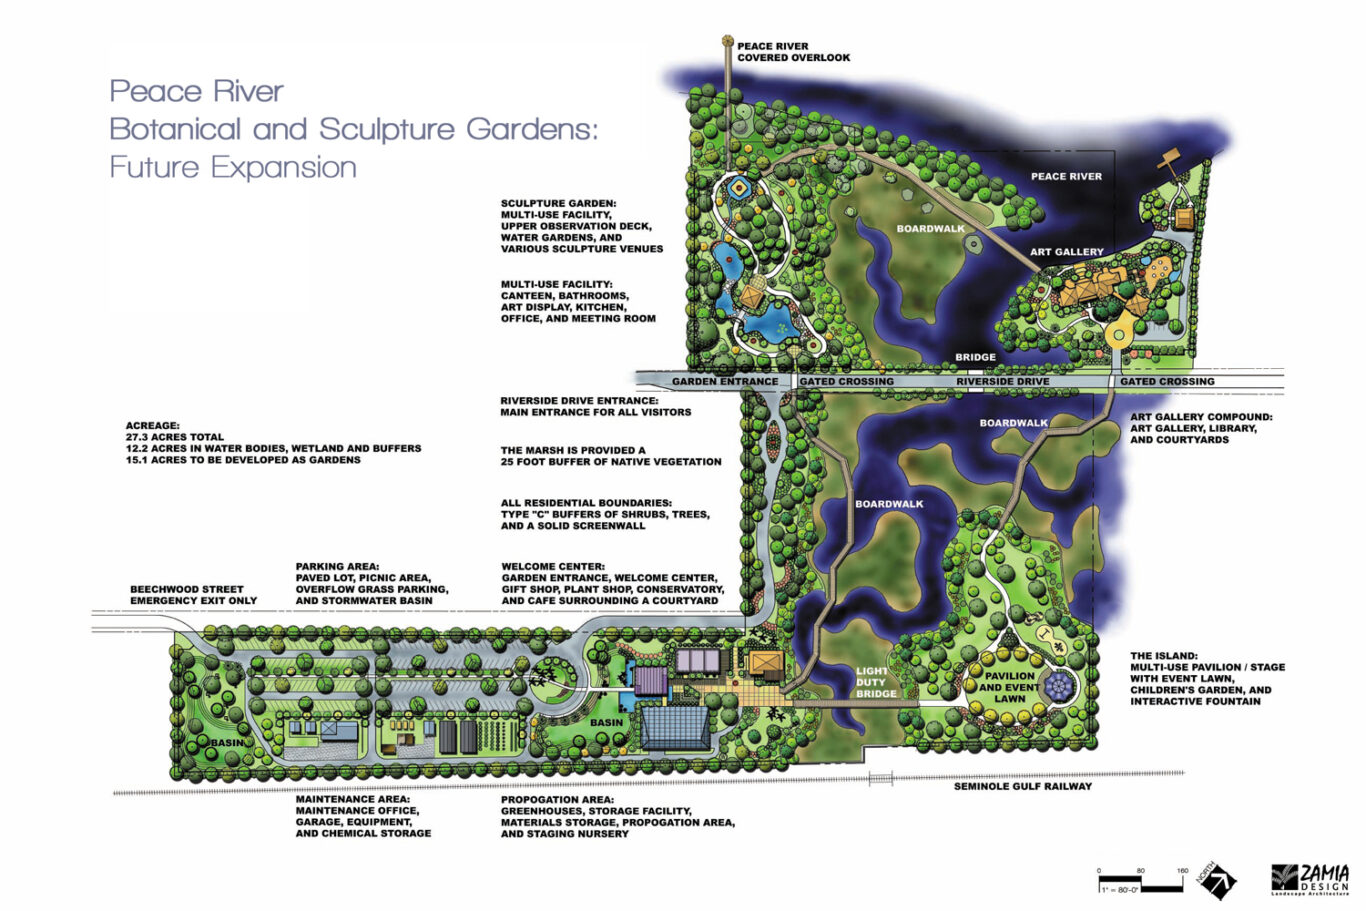 Peace River Botanical & Sculpture Gardens Master Plan